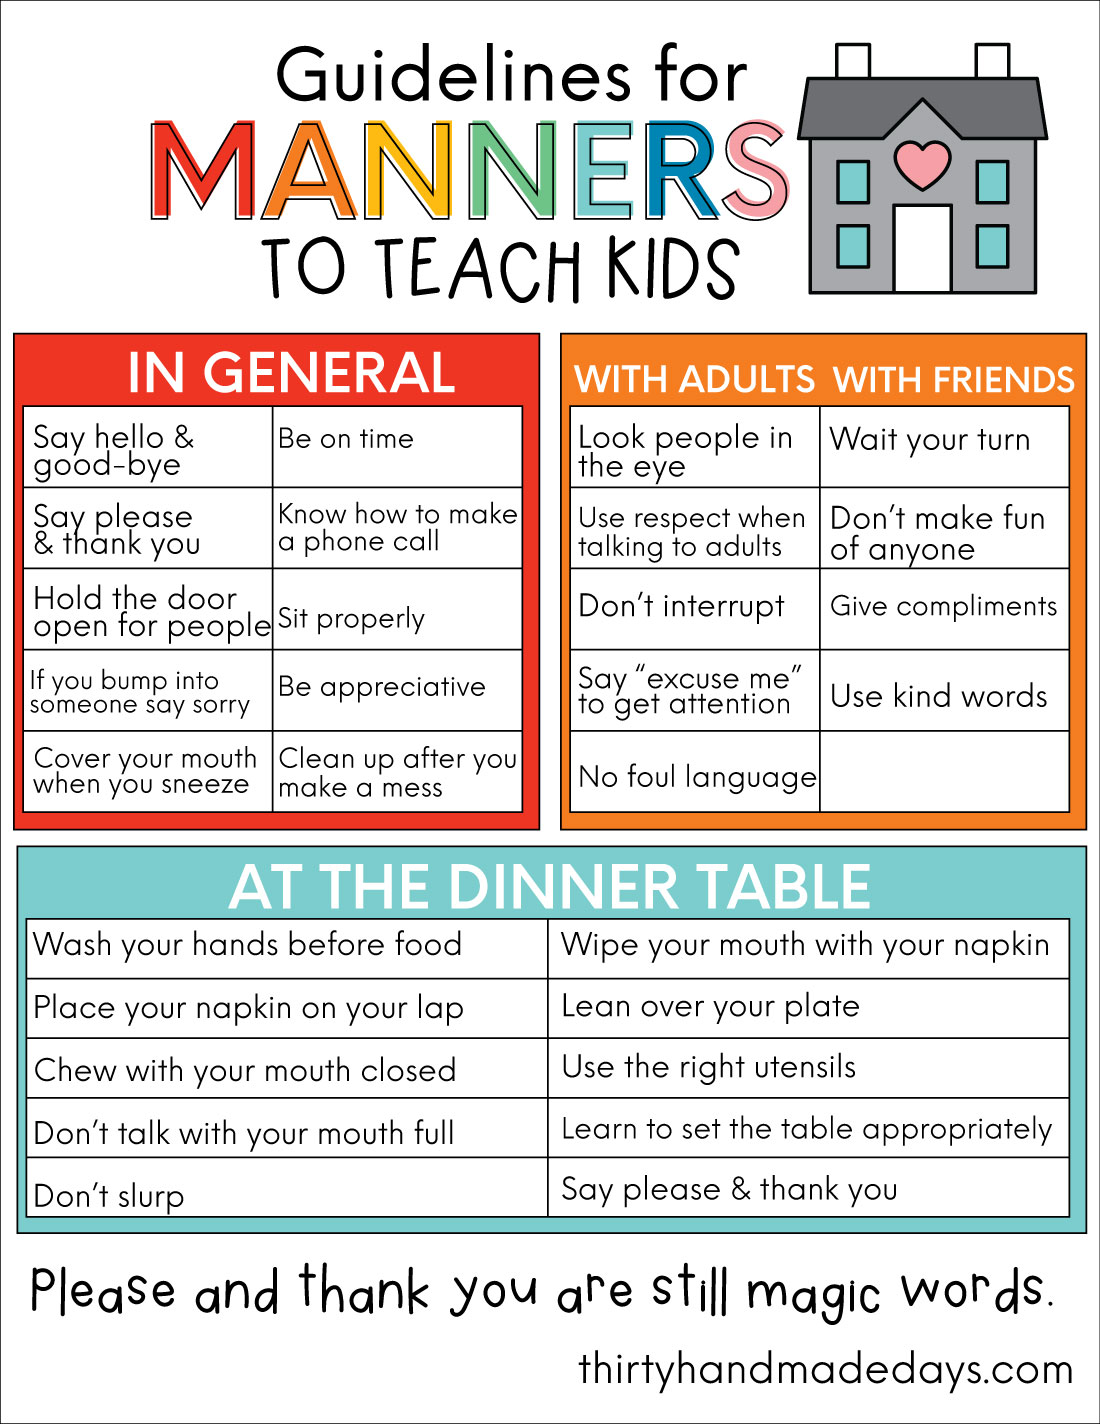 Guidelines For Good Manners To Teach Kids From Thirty